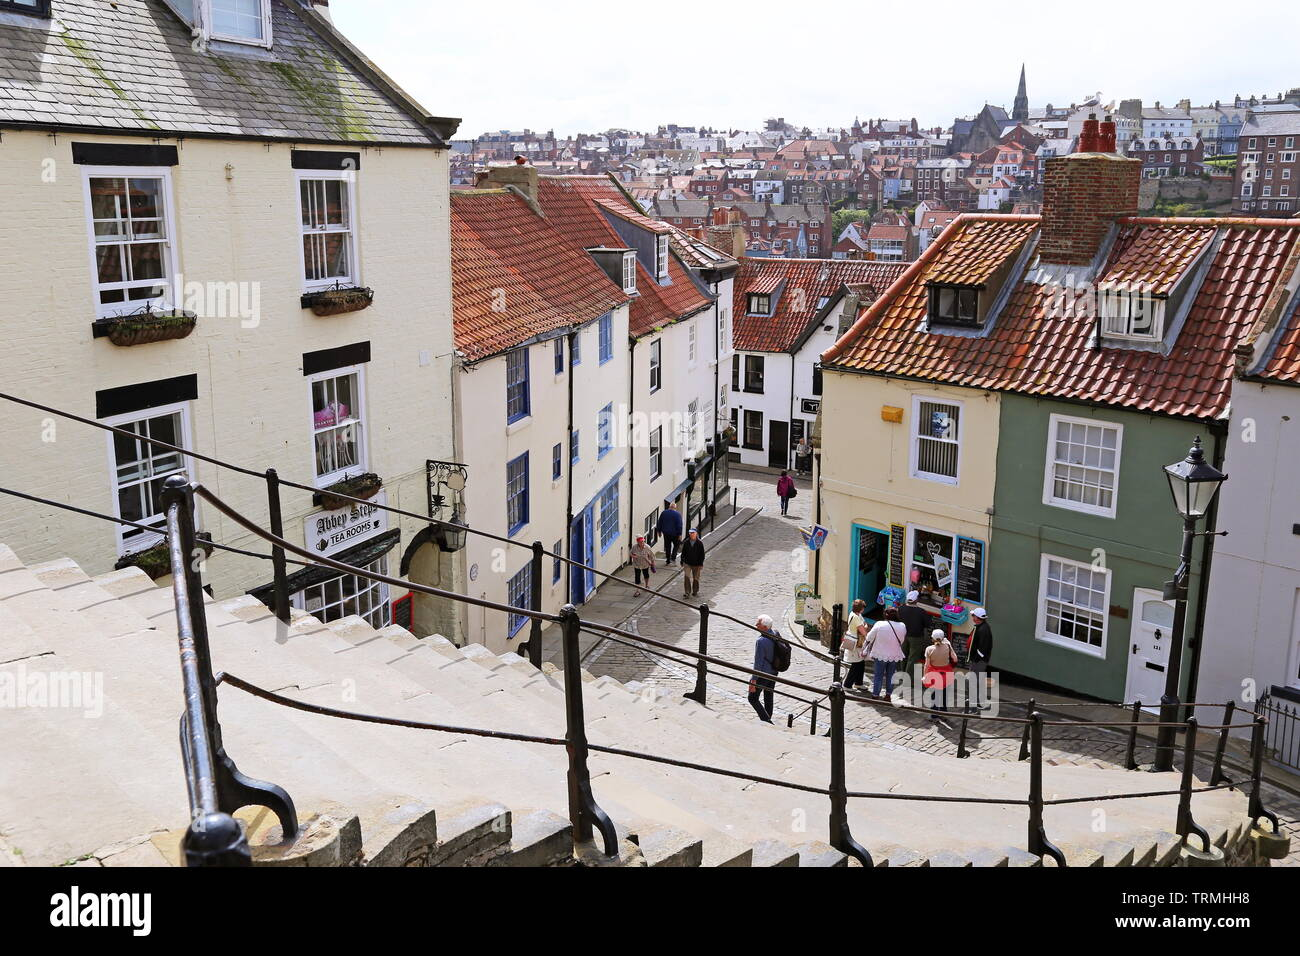 Abbey Steps, going up from old town to St Mary's, Whitby, Borough of Scarborough, North Yorkshire, England, Great Britain, United Kingdom, UK, Europe Stock Photo